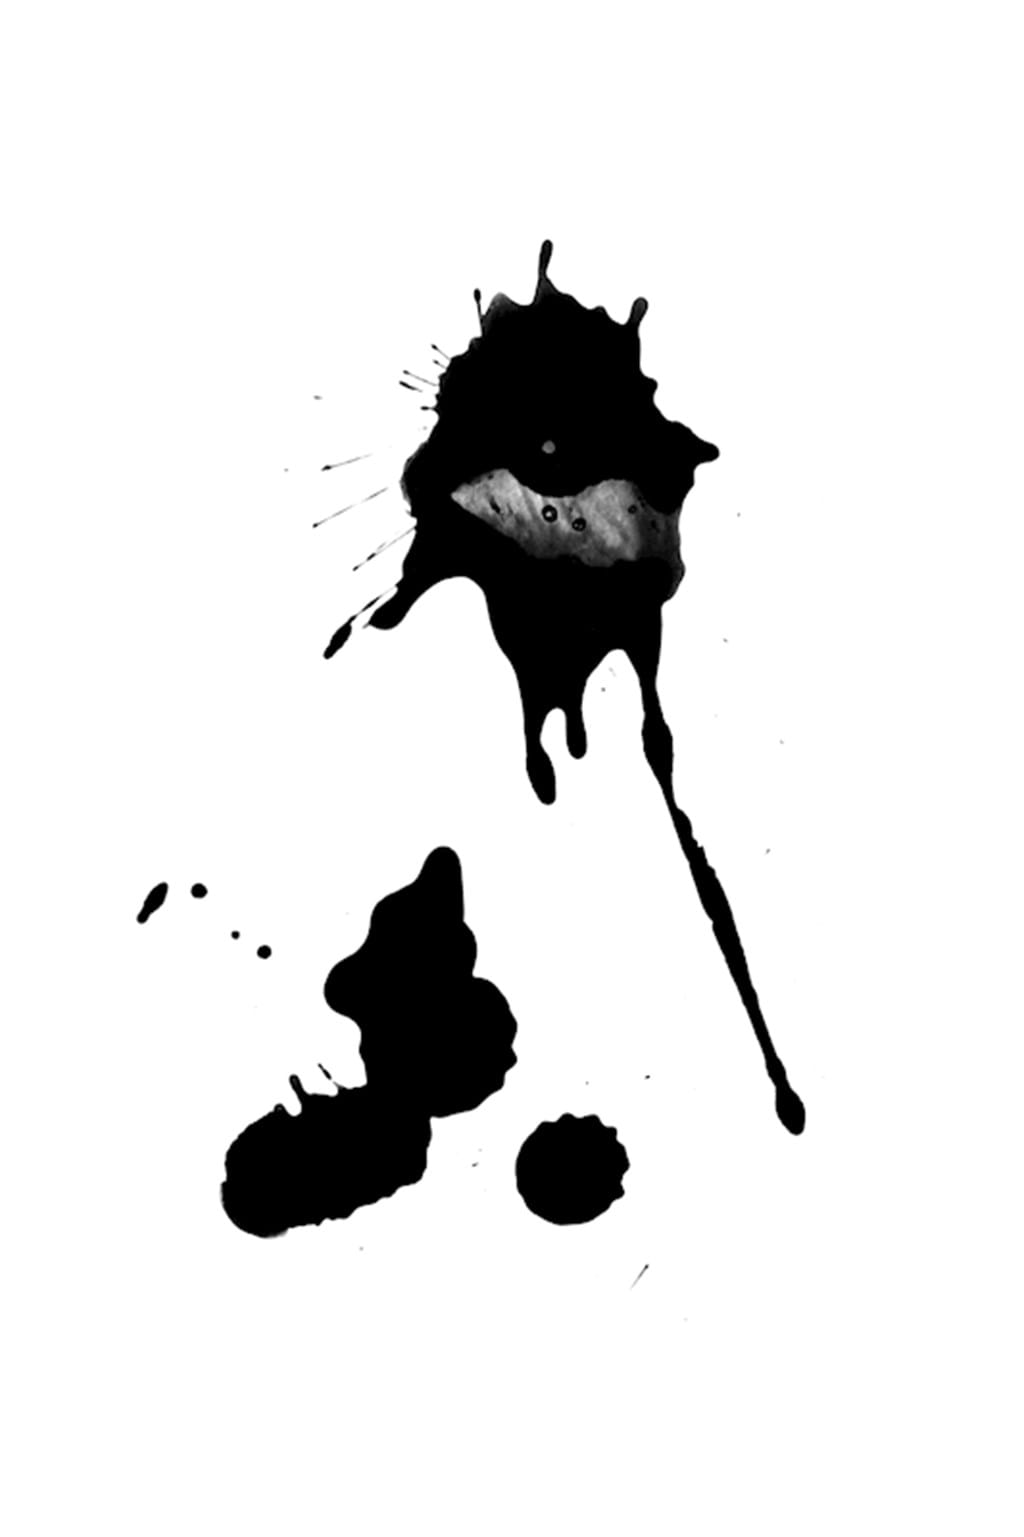 Poster: Ink outside the box - Artistic